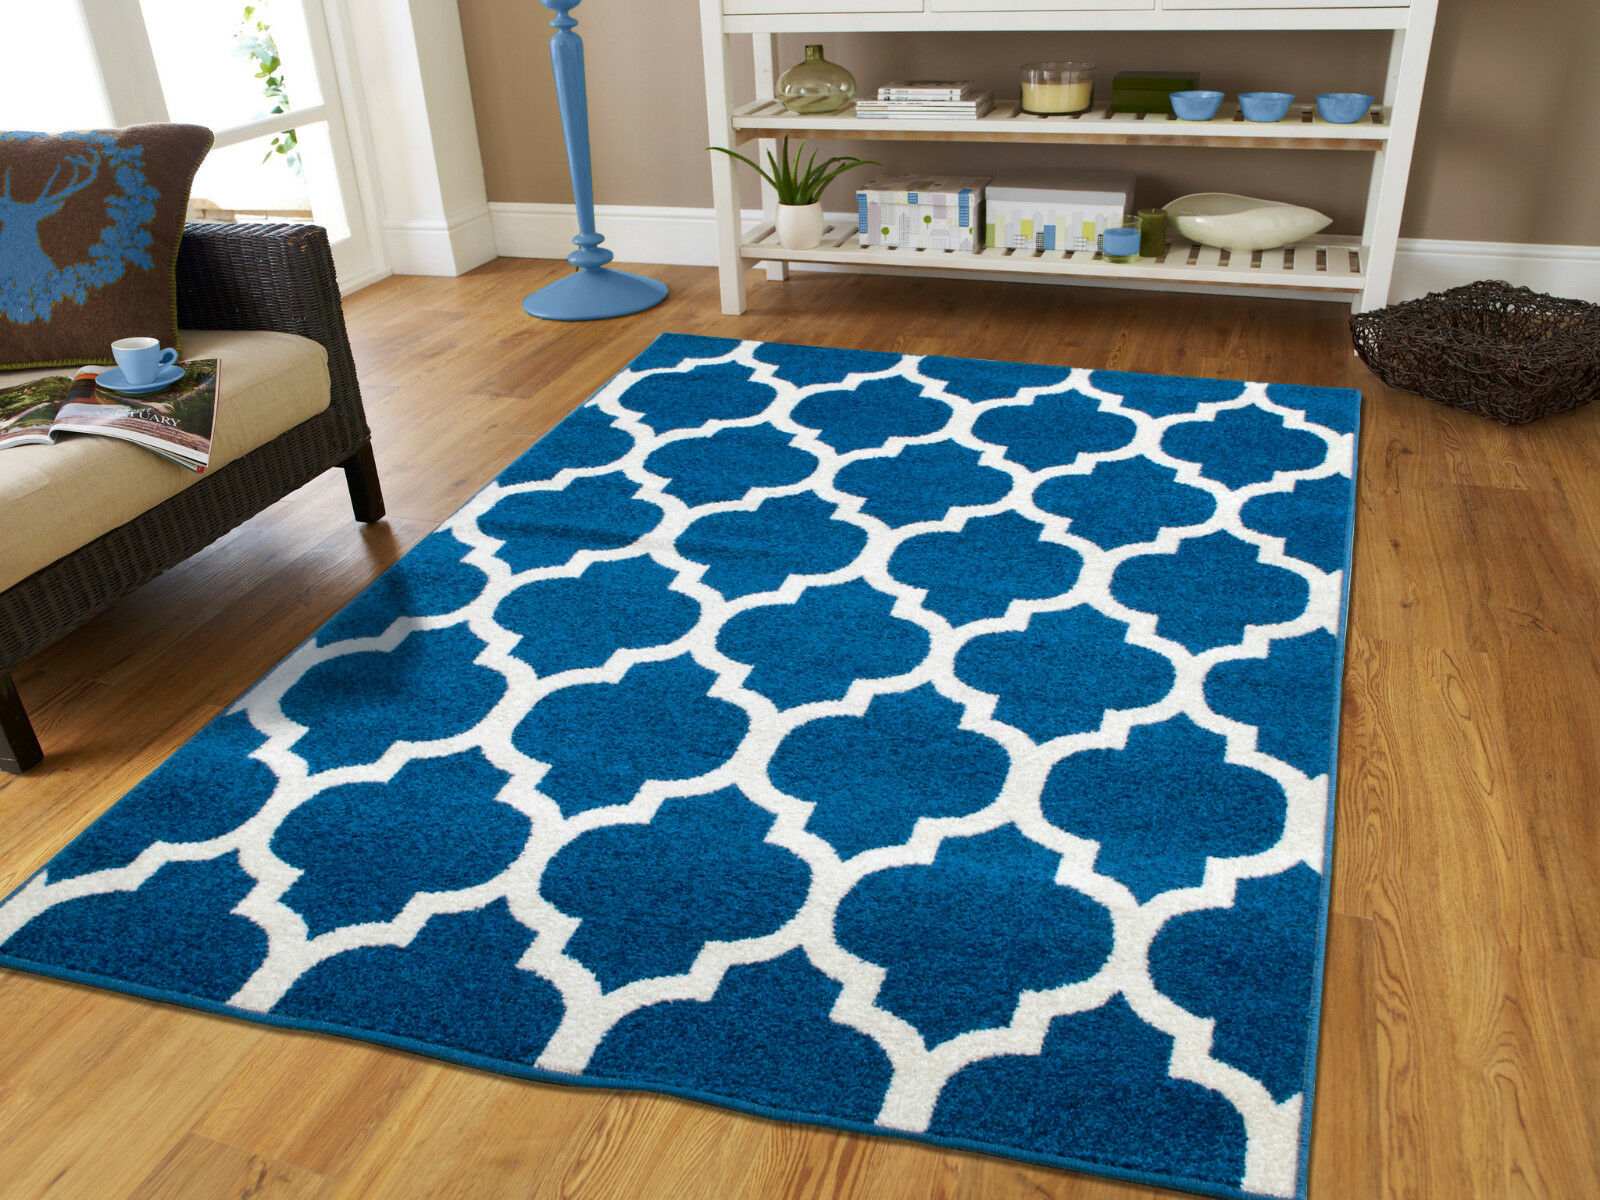 Linon Rugs Silhouette Yellow Key Rug 5 X 7 For Sale Online Ebay